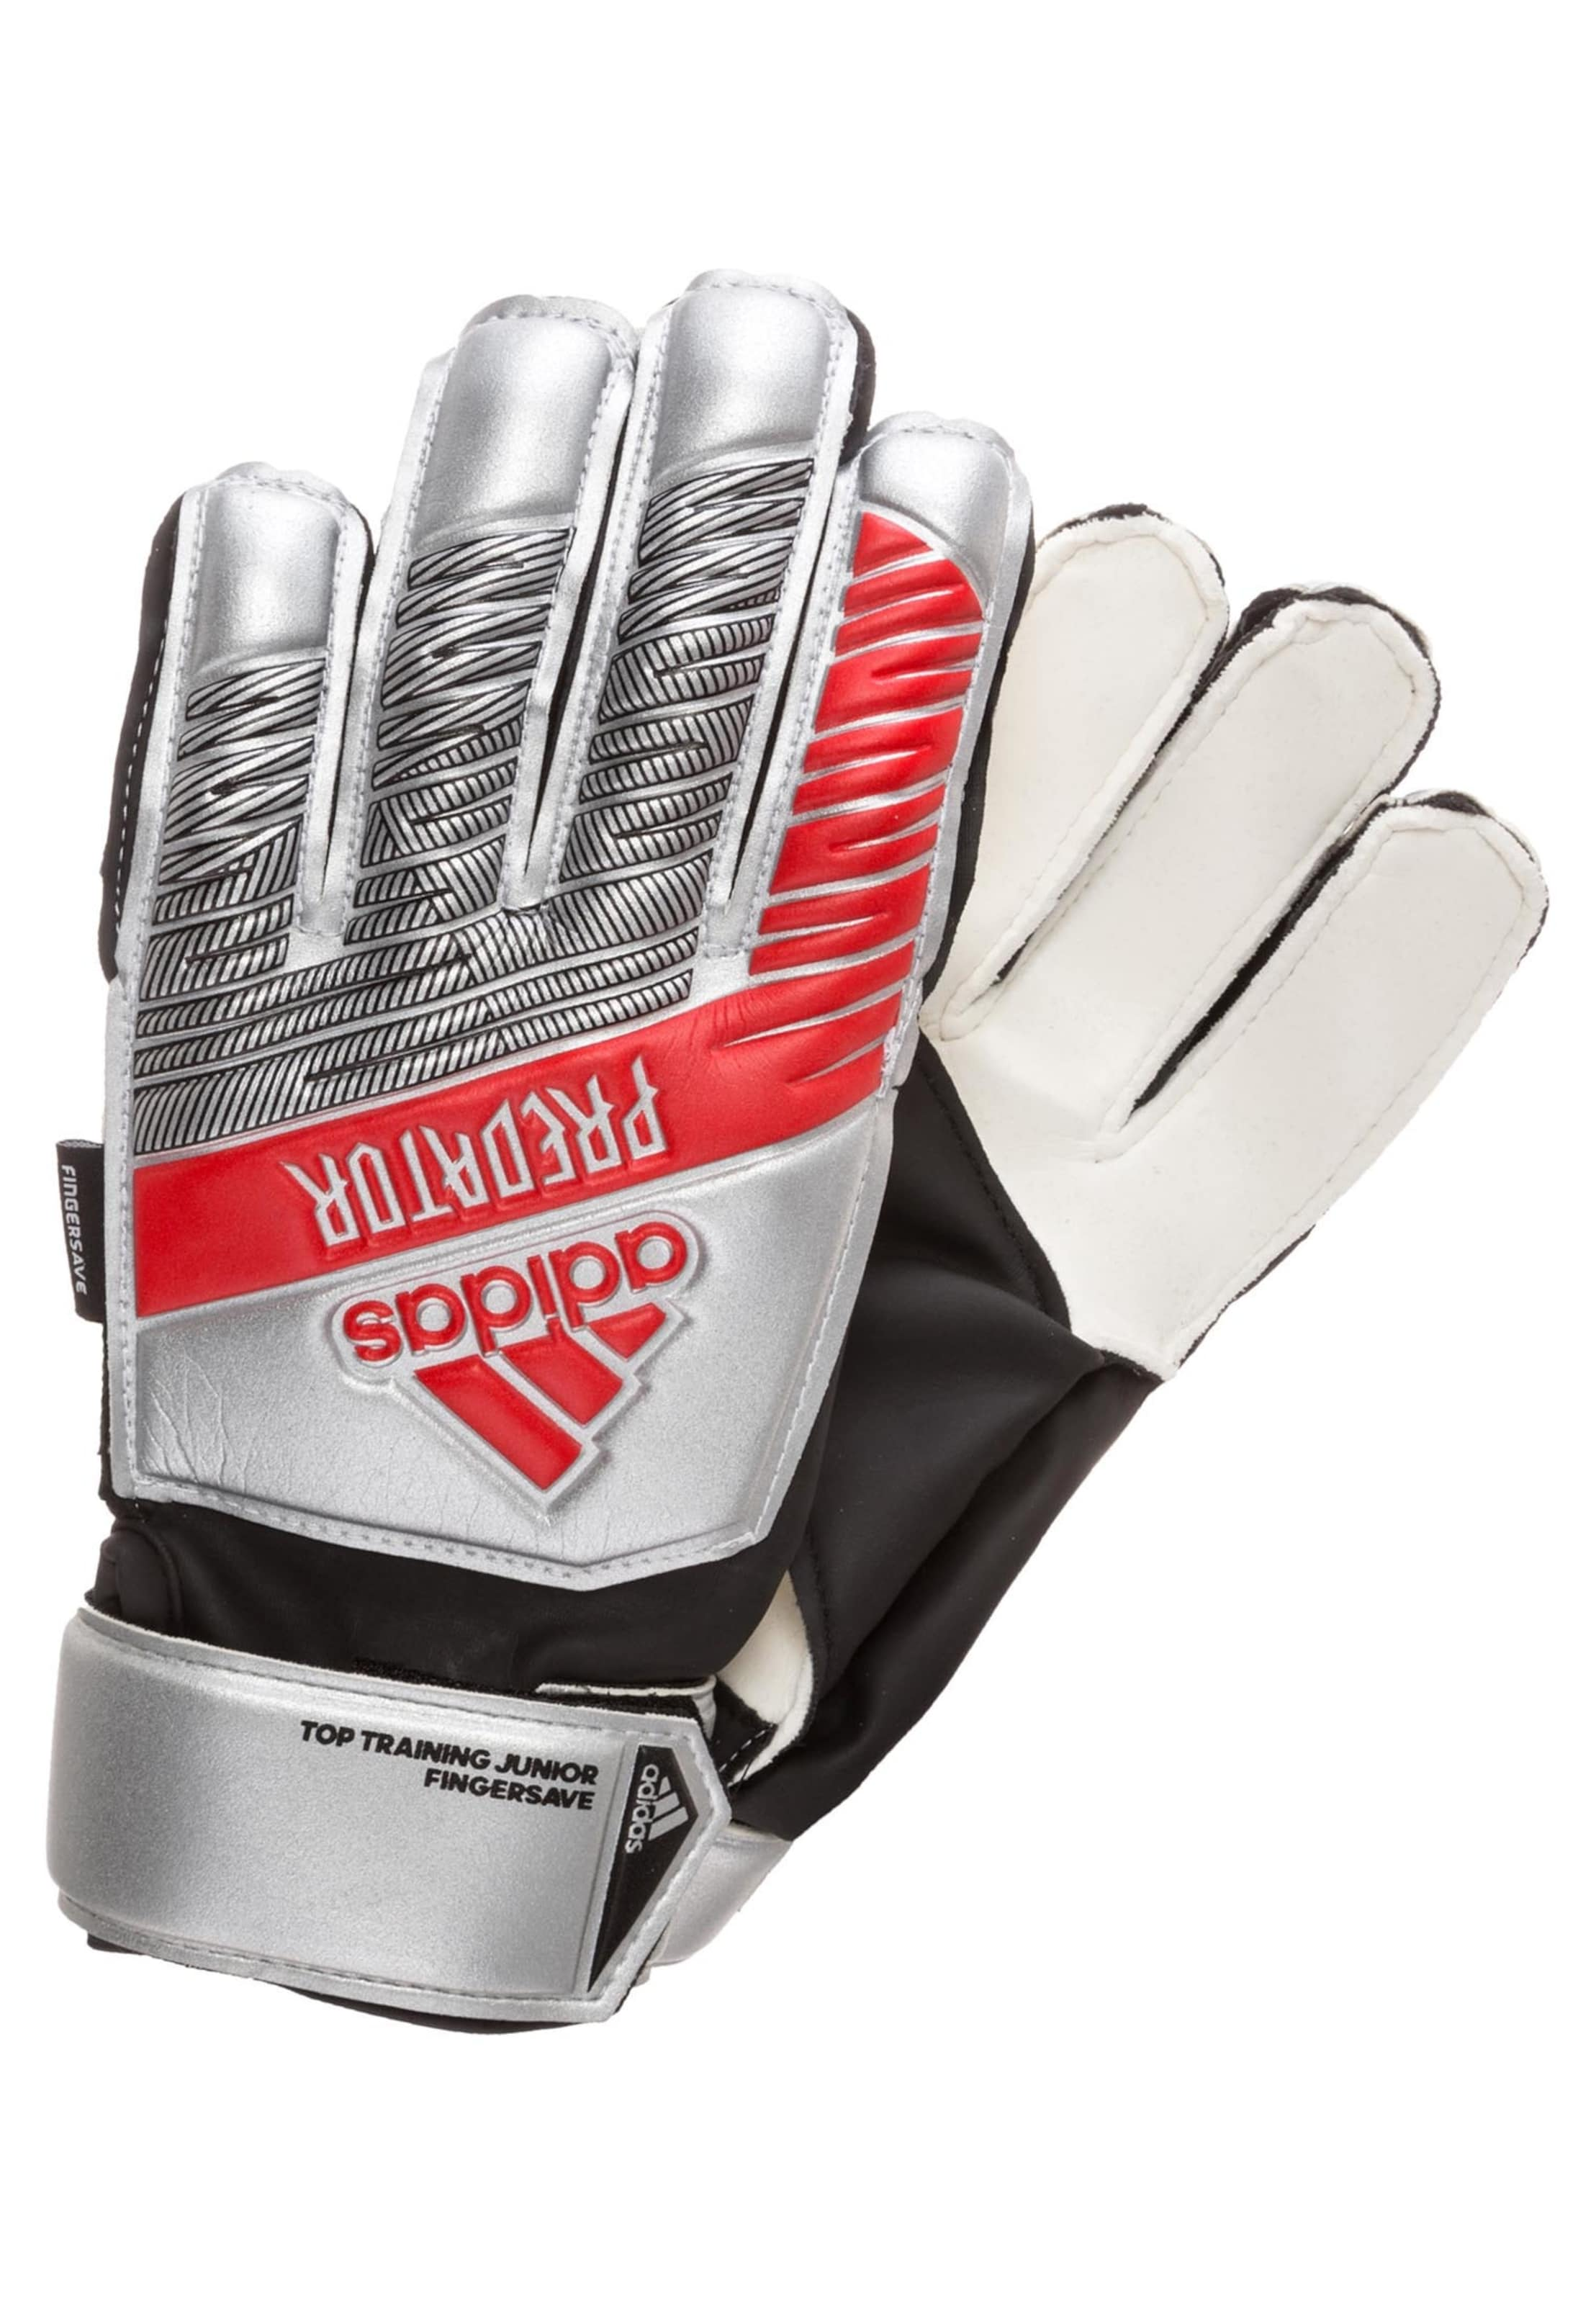 Performance Top In Silber RotSchwarz Fingersave' 'predator Torwarthandschuhe Adidas Training EHD92I